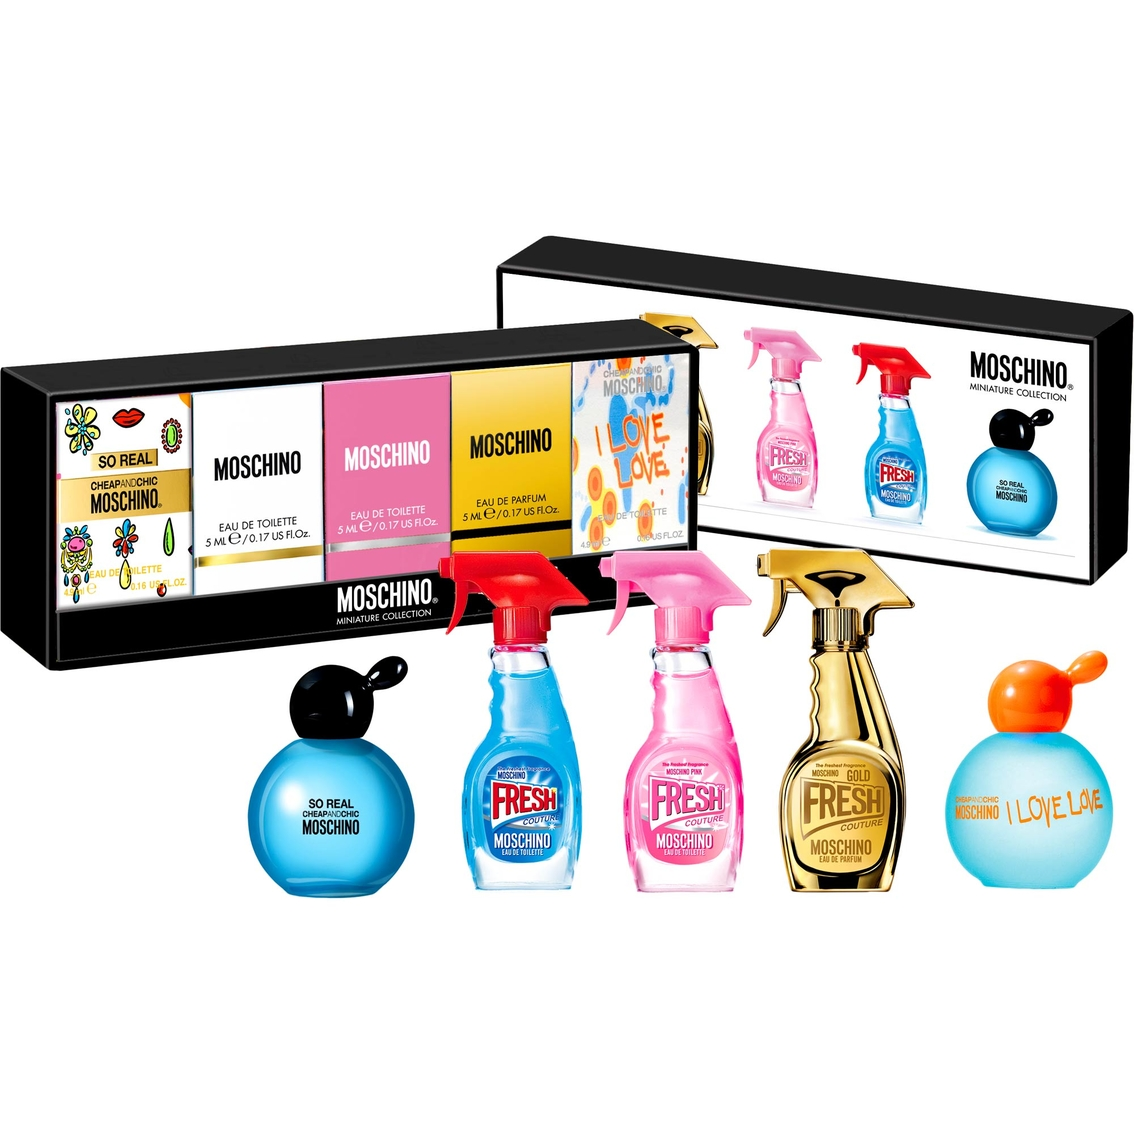 7baf5454faf Moschino Deluxe Mini Coffret | Gifts Sets For Her | Beauty & Health ...